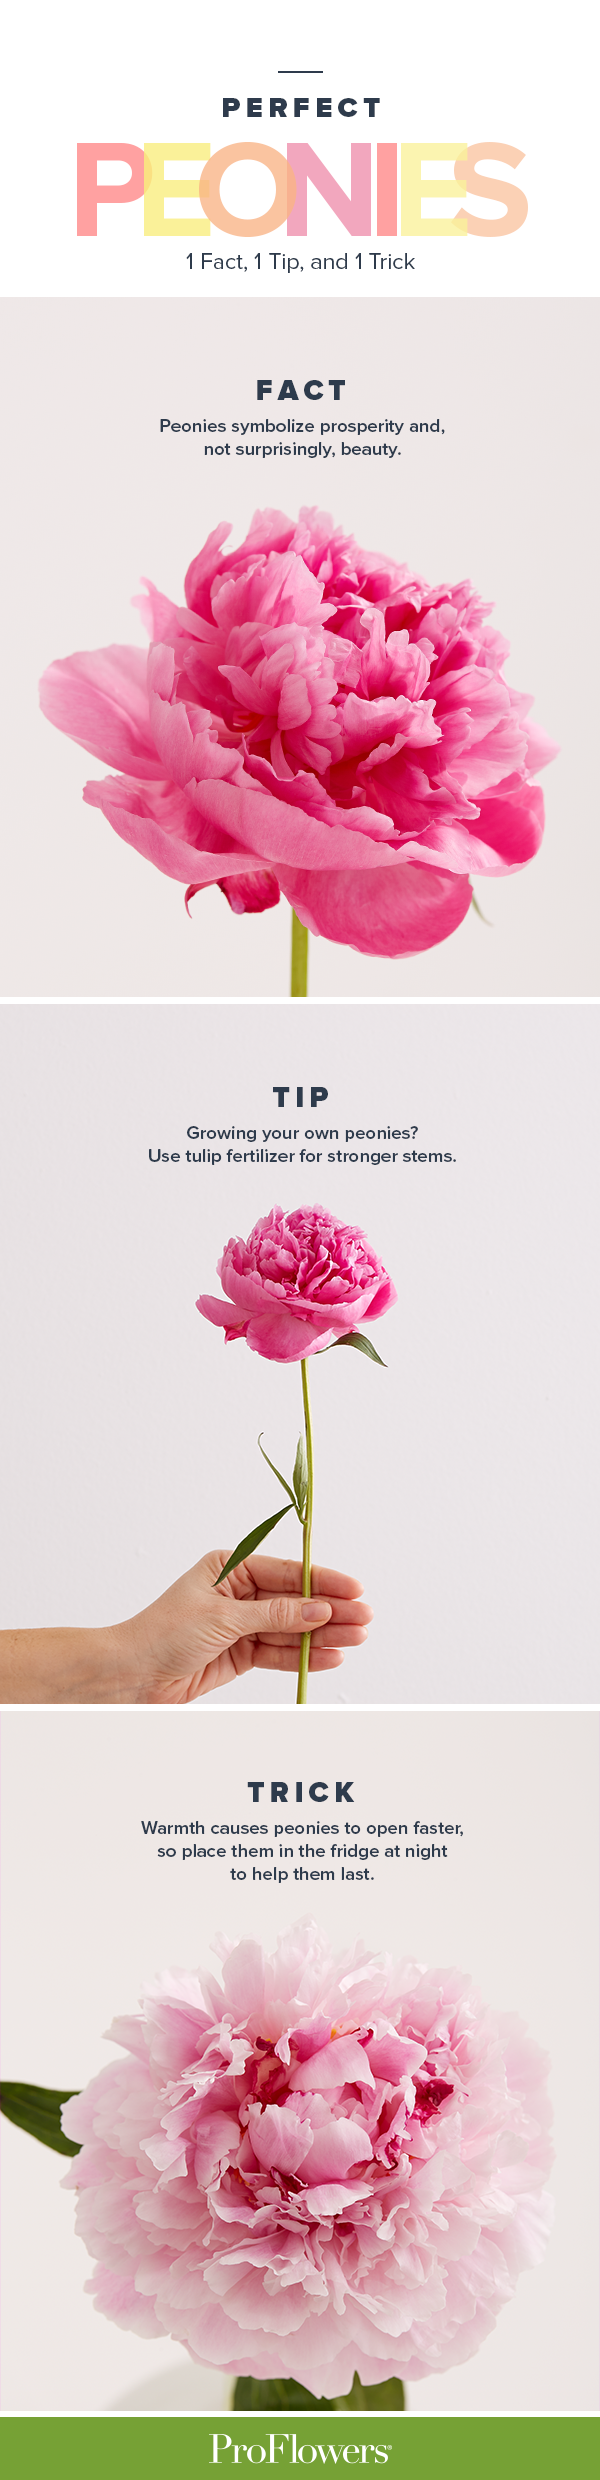 Choosing The Best Pink Flowers For Your Lovely Garden Flowers